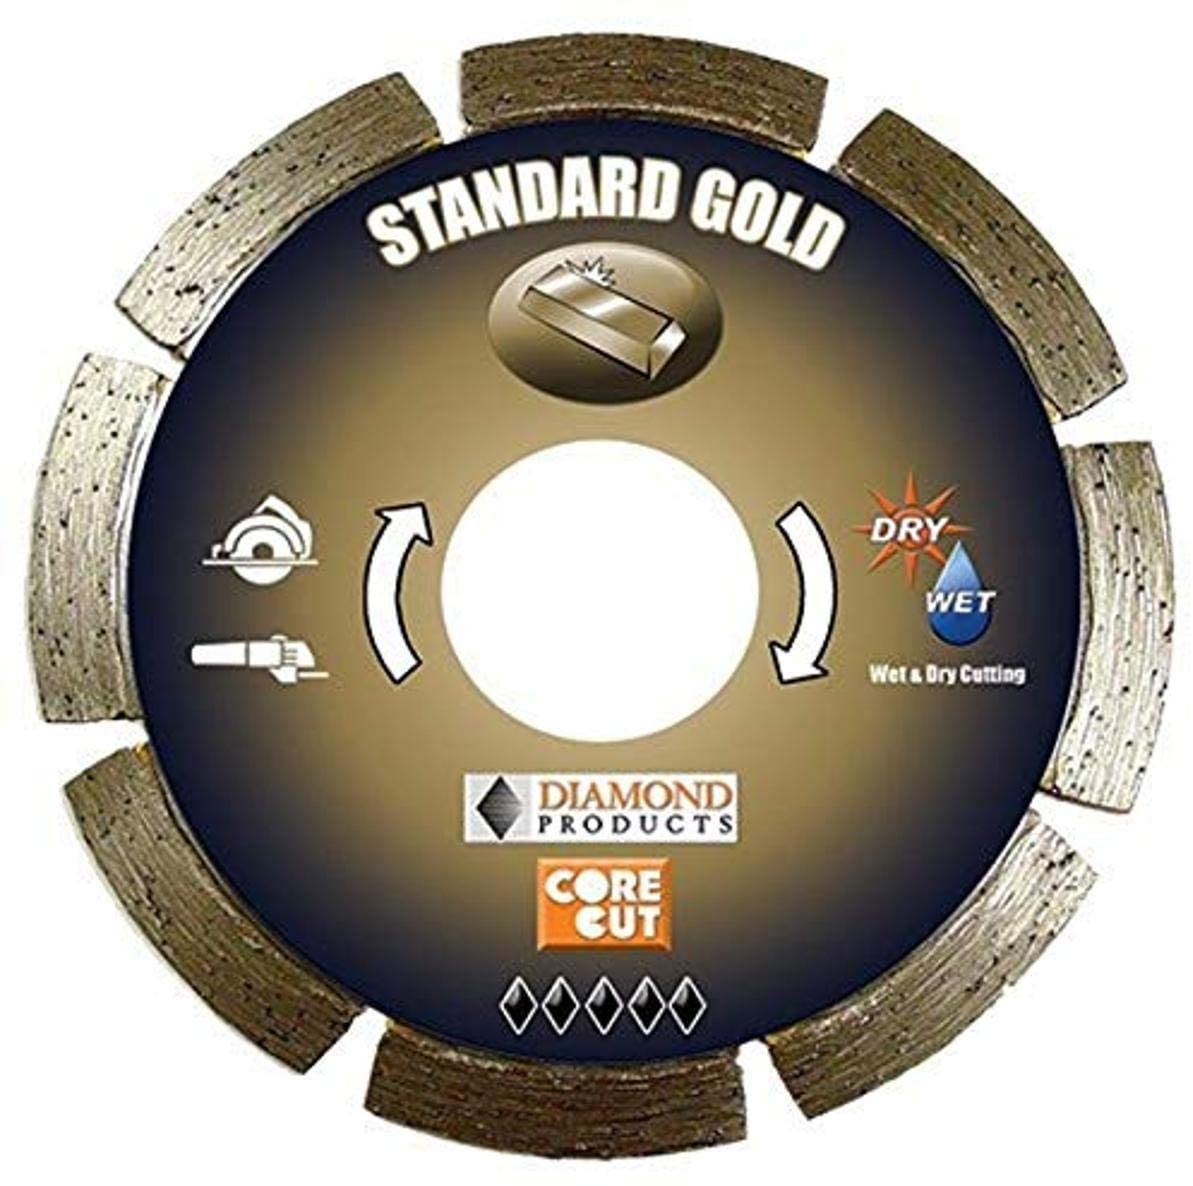 Diamond Products Core Cut 12462 4-Inch by 0.250 Standard Gold Tuck Point Blade